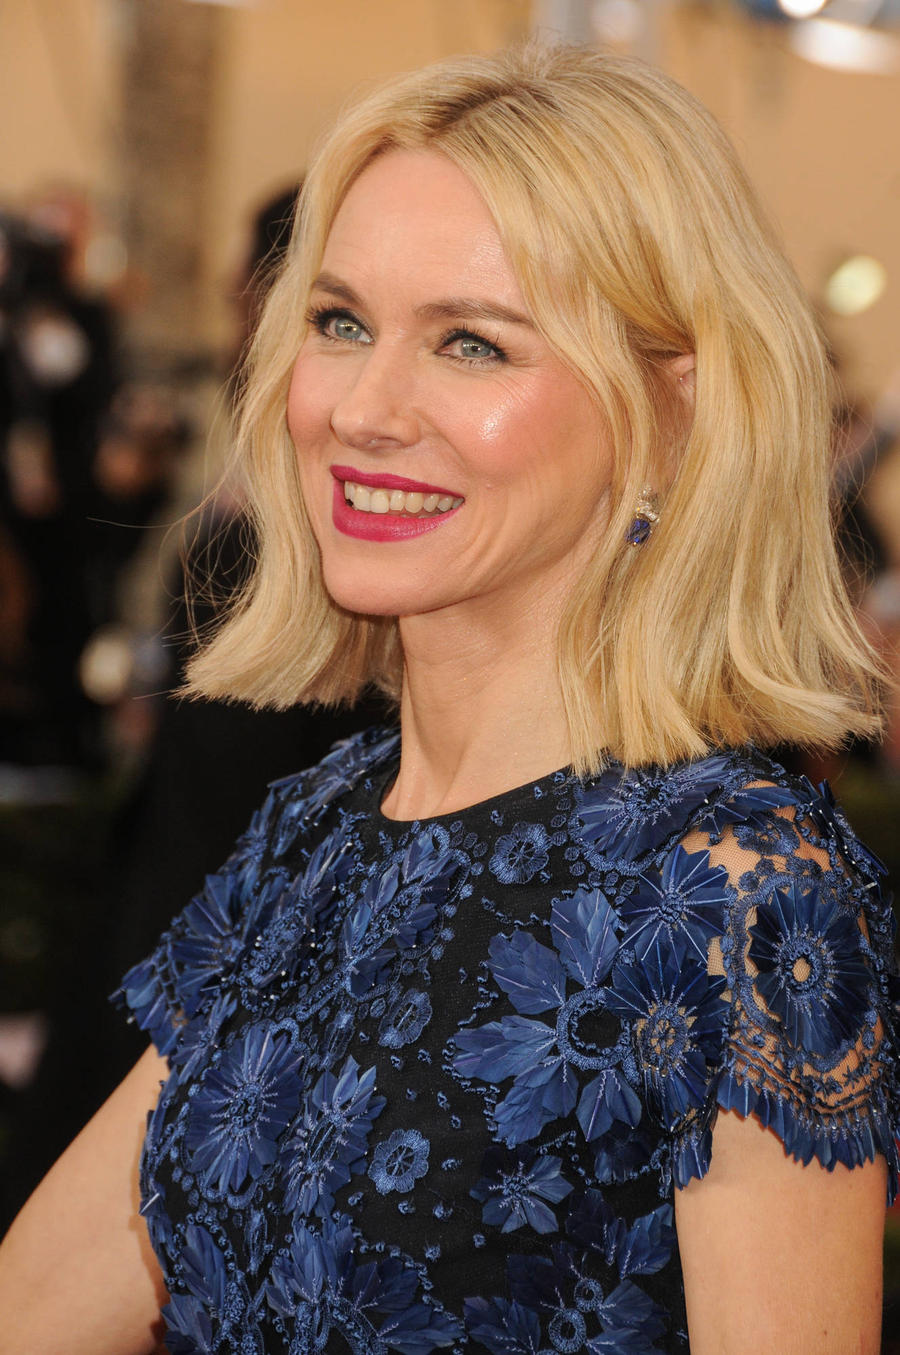 Naomi Watts Reuniting With David Lynch For Twin Peaks - Report